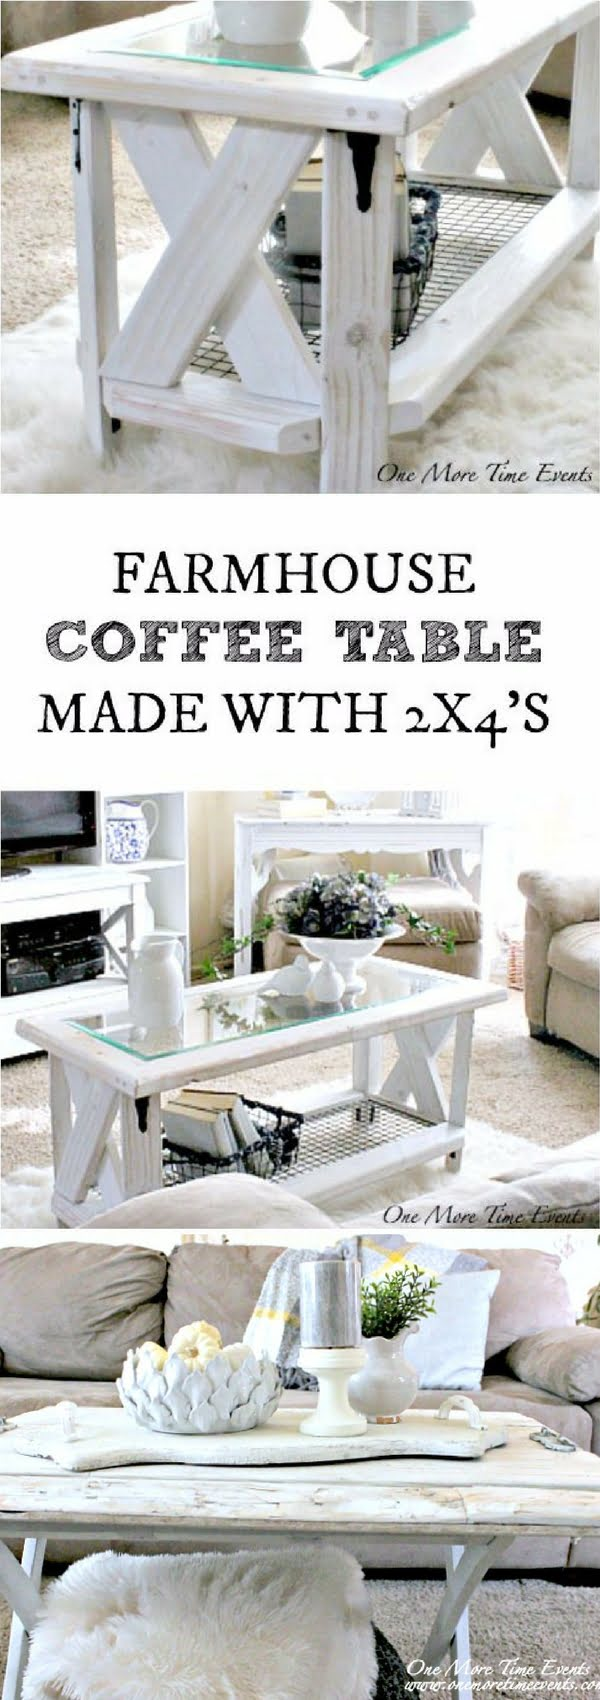 Check out how to make a DIY farmhouse coffee table from 2x4s